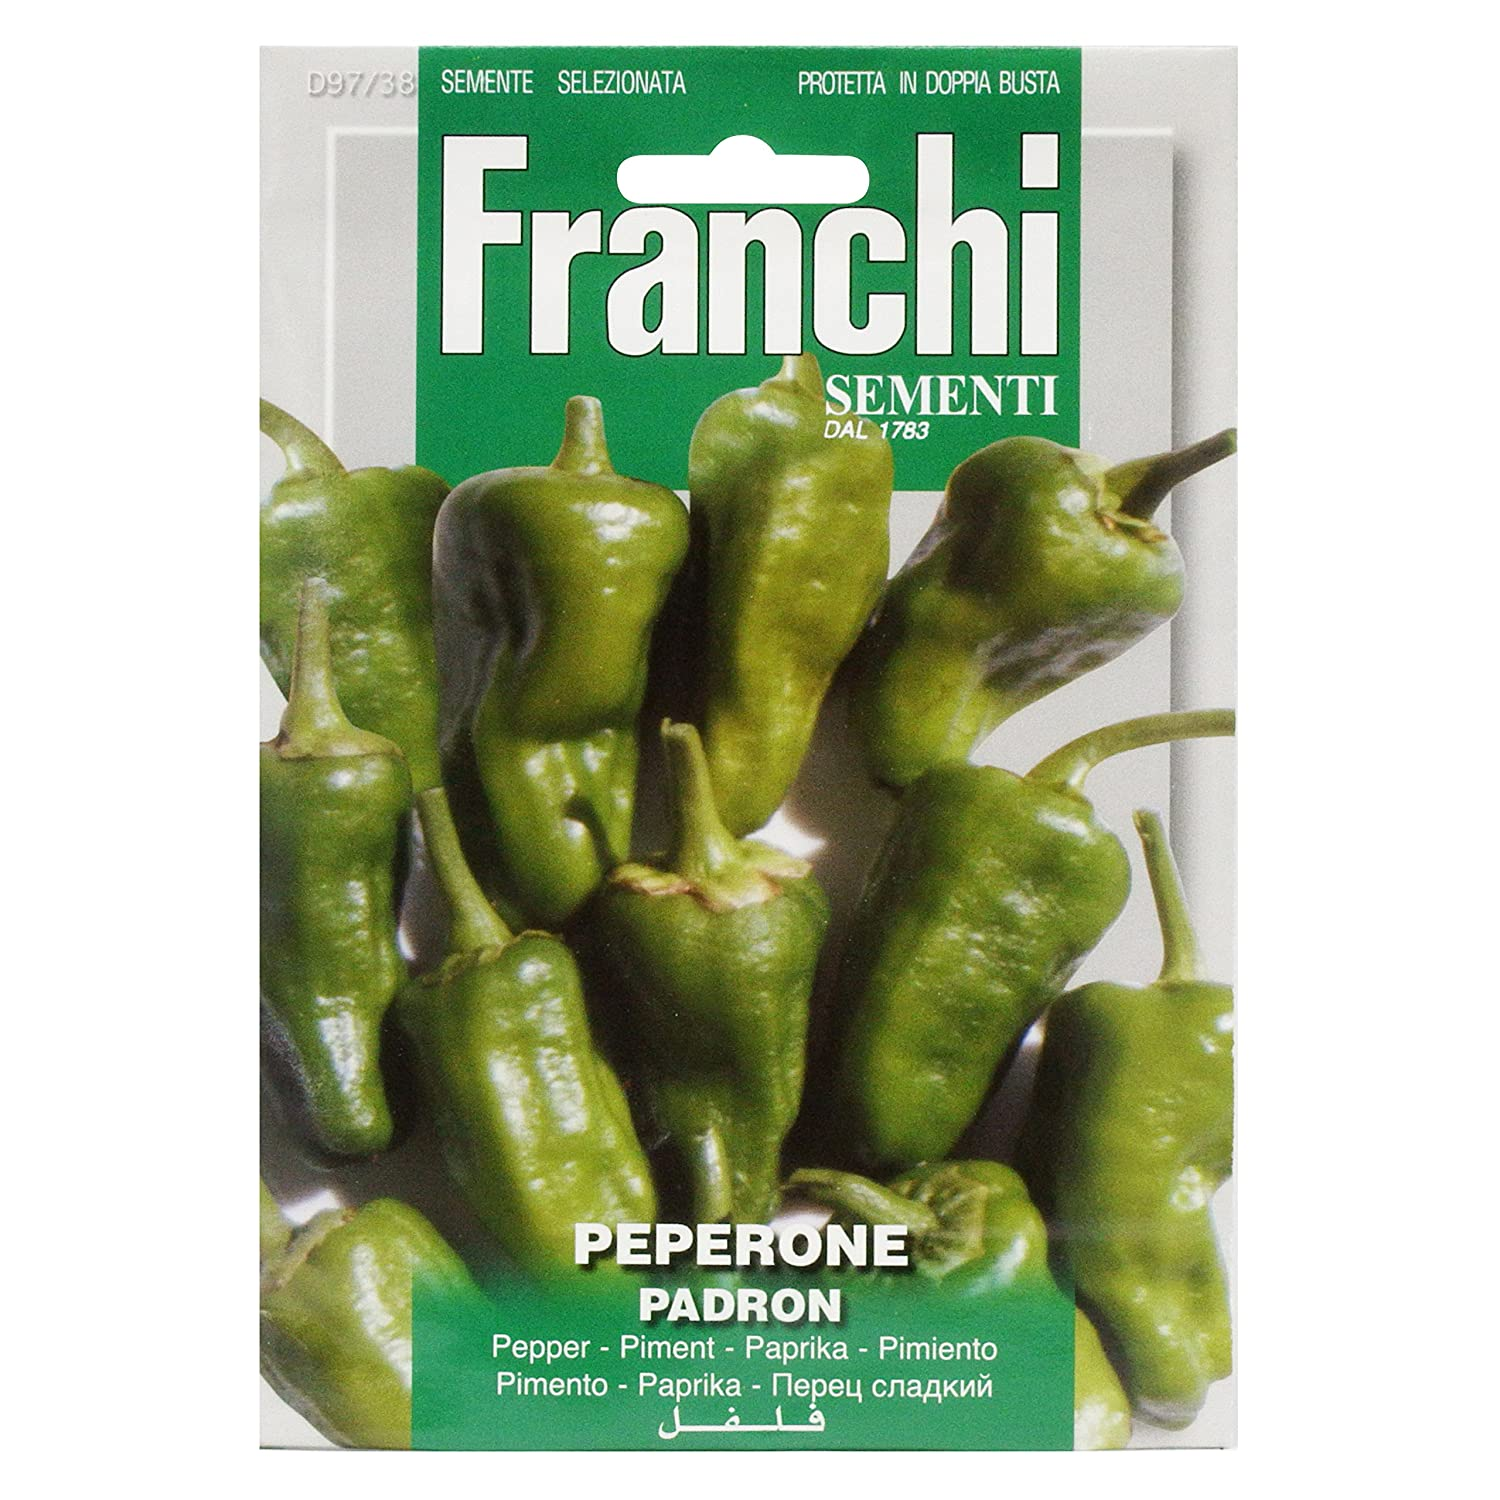 Franchi Pepper Padron Johnny HALLYDAY Seeds of Italy Ltd 97/38